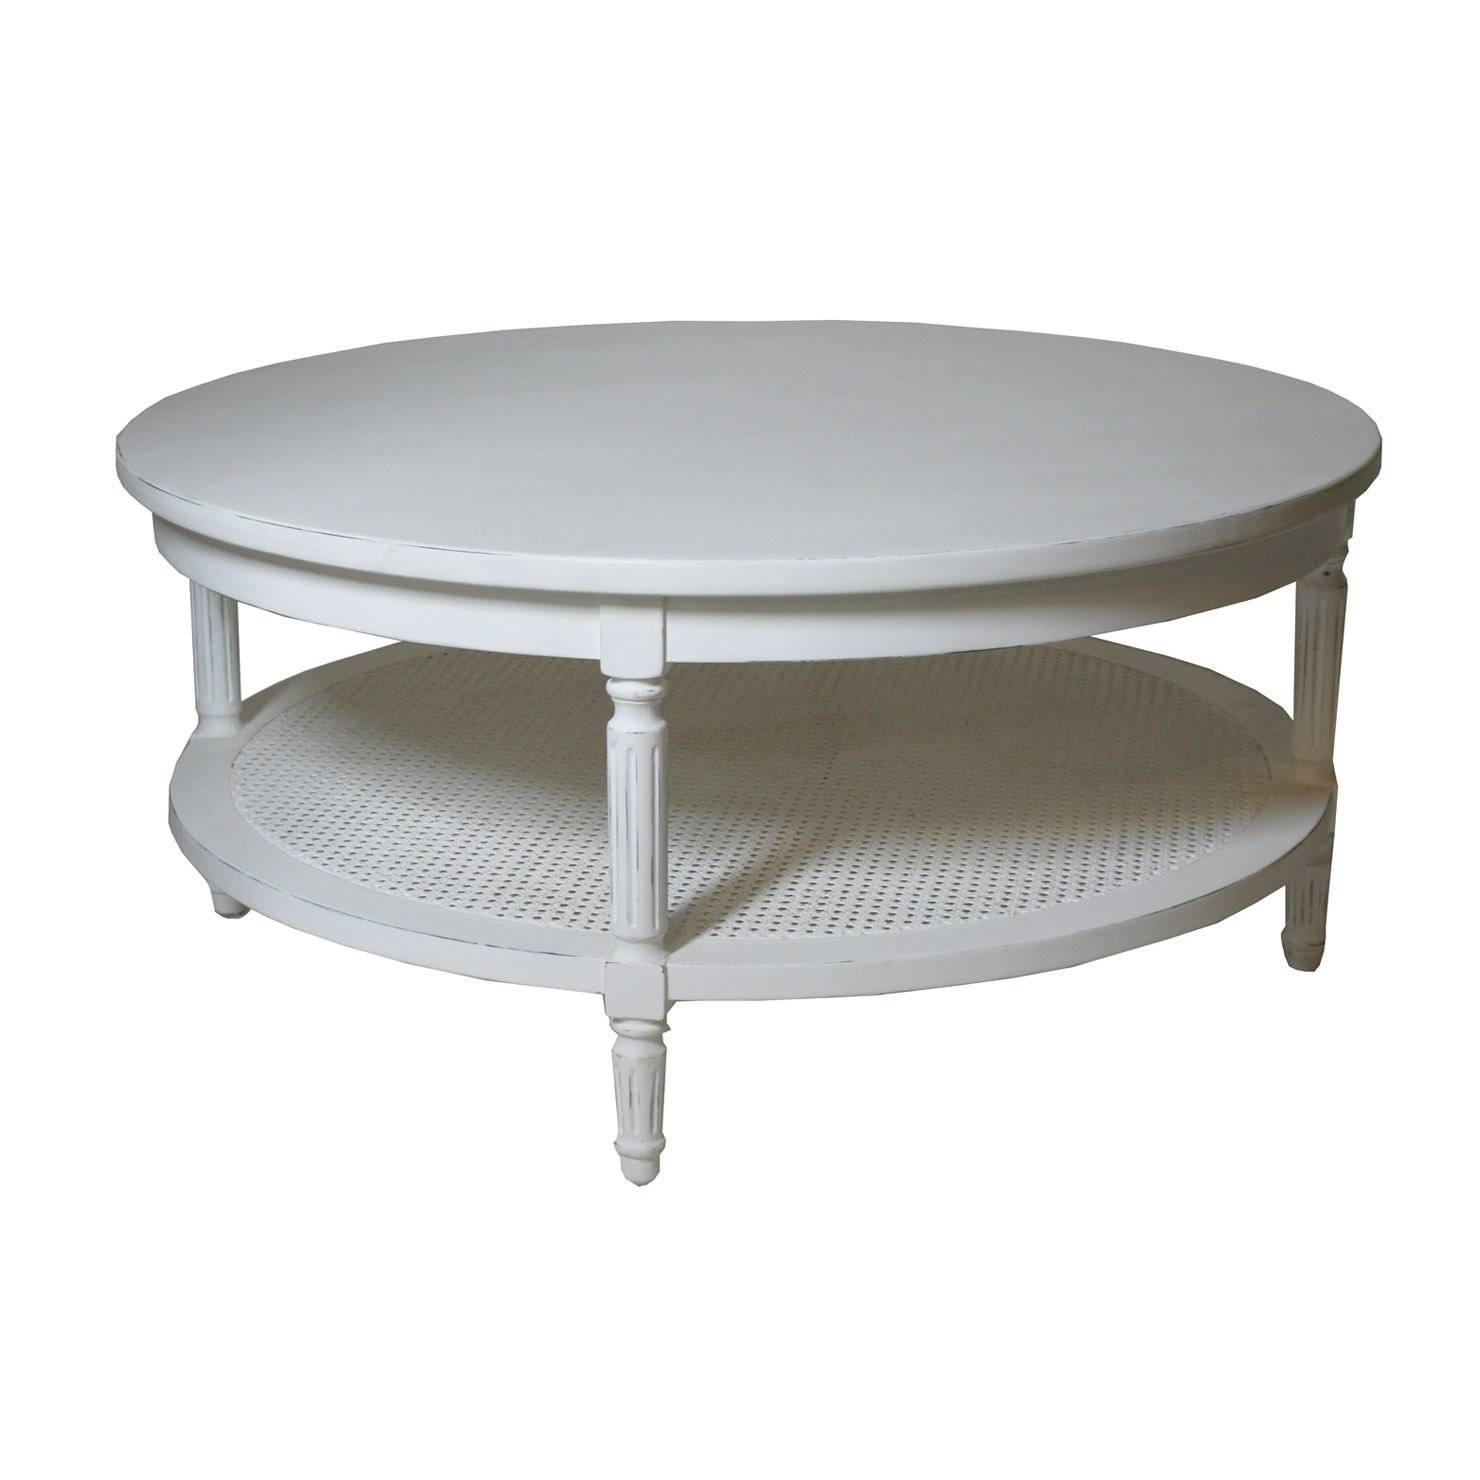 Astonishing White Coffee Table Living Room Decor Ideas – White inside White Wood and Glass Coffee Tables (Image 2 of 30)